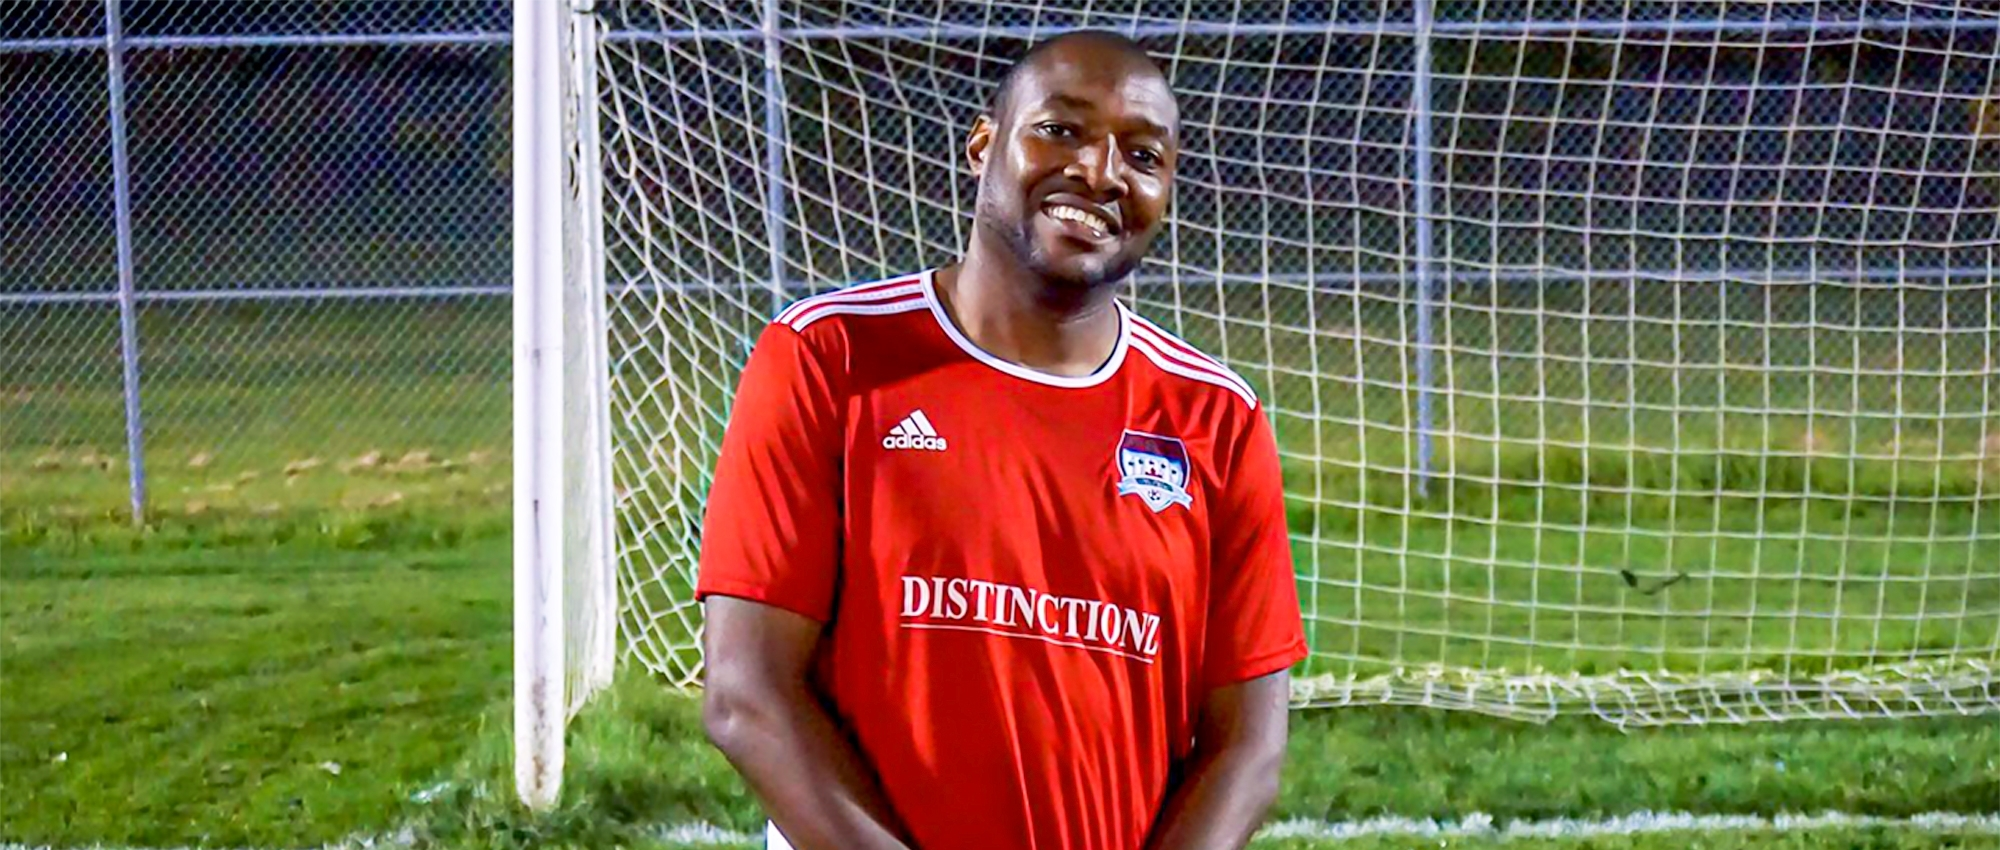 Featured image of Dujon Donaldson wearing a red soccer uniform in front of a soccer goal post